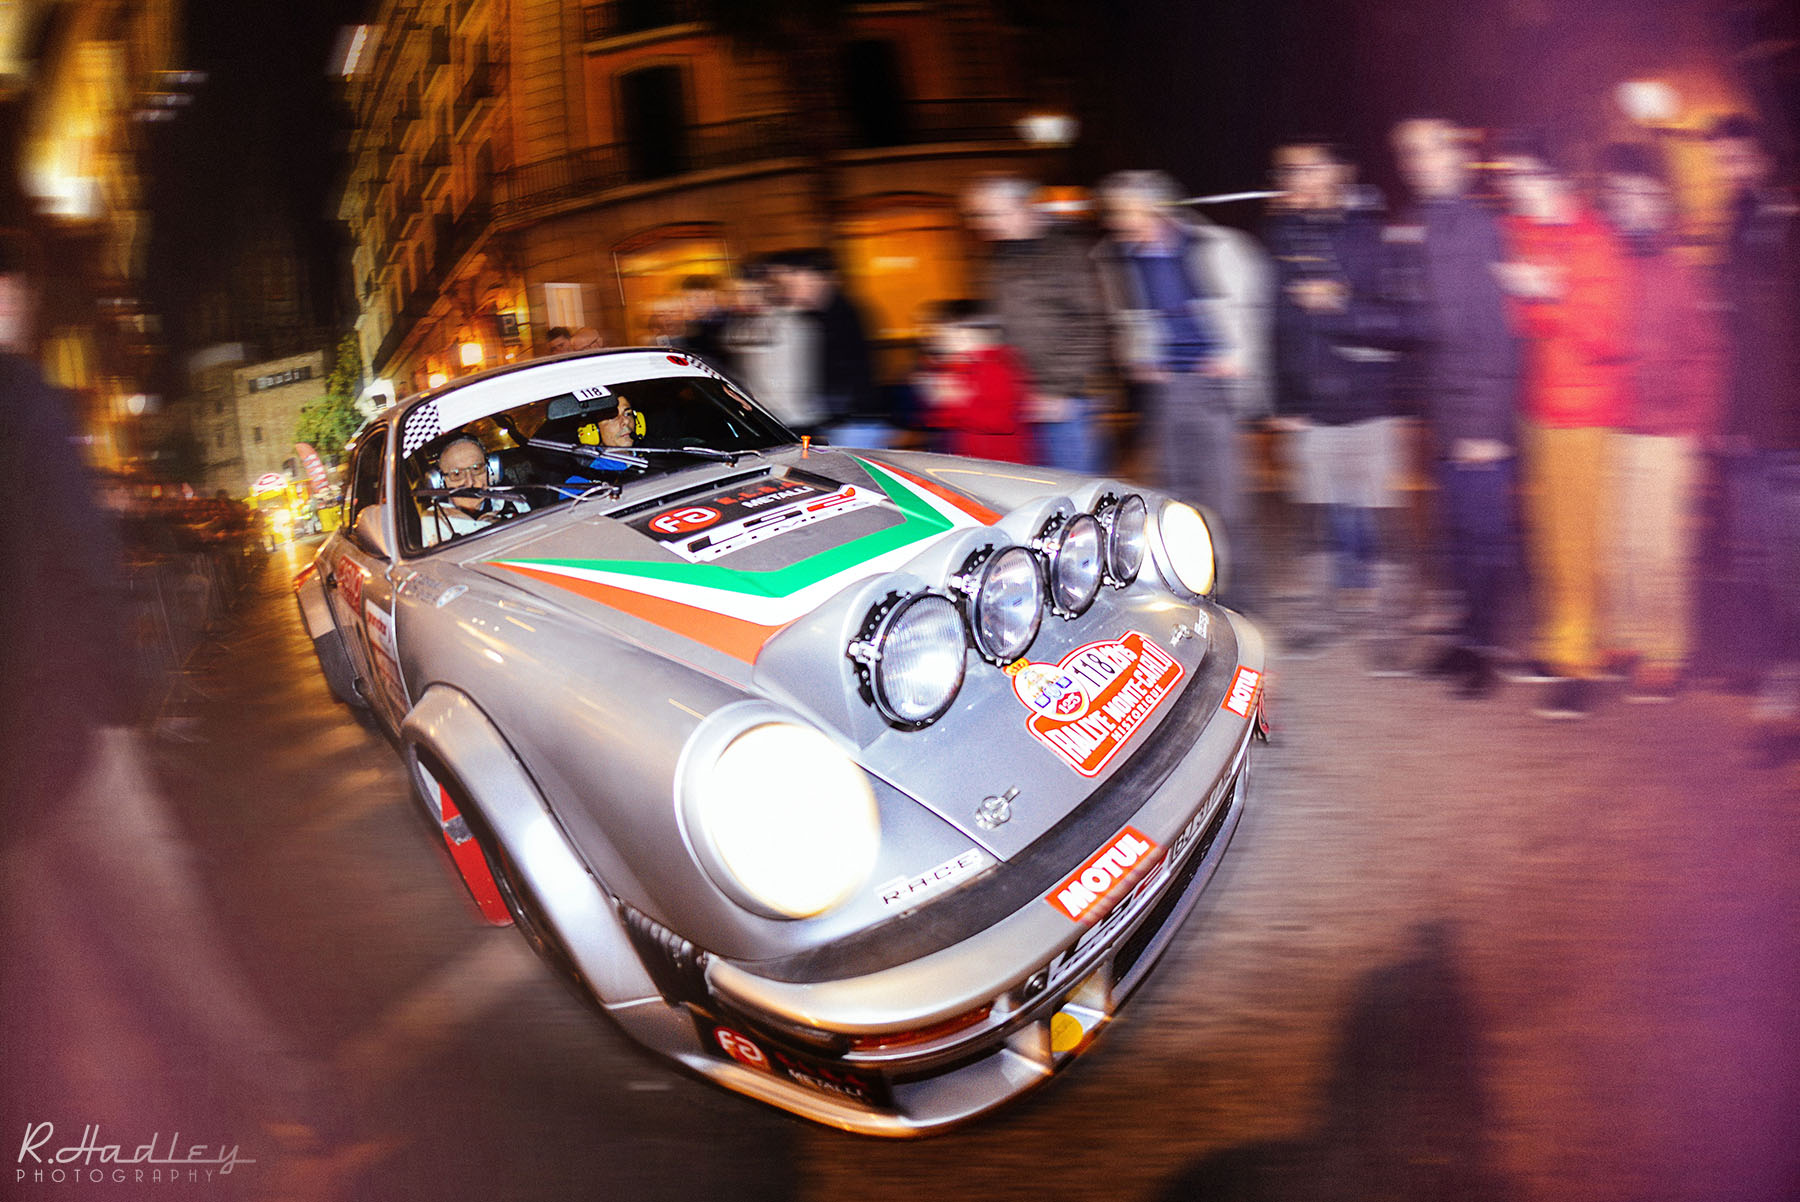 Barcelona event of Rallye Monte-Carlo Historique 2015